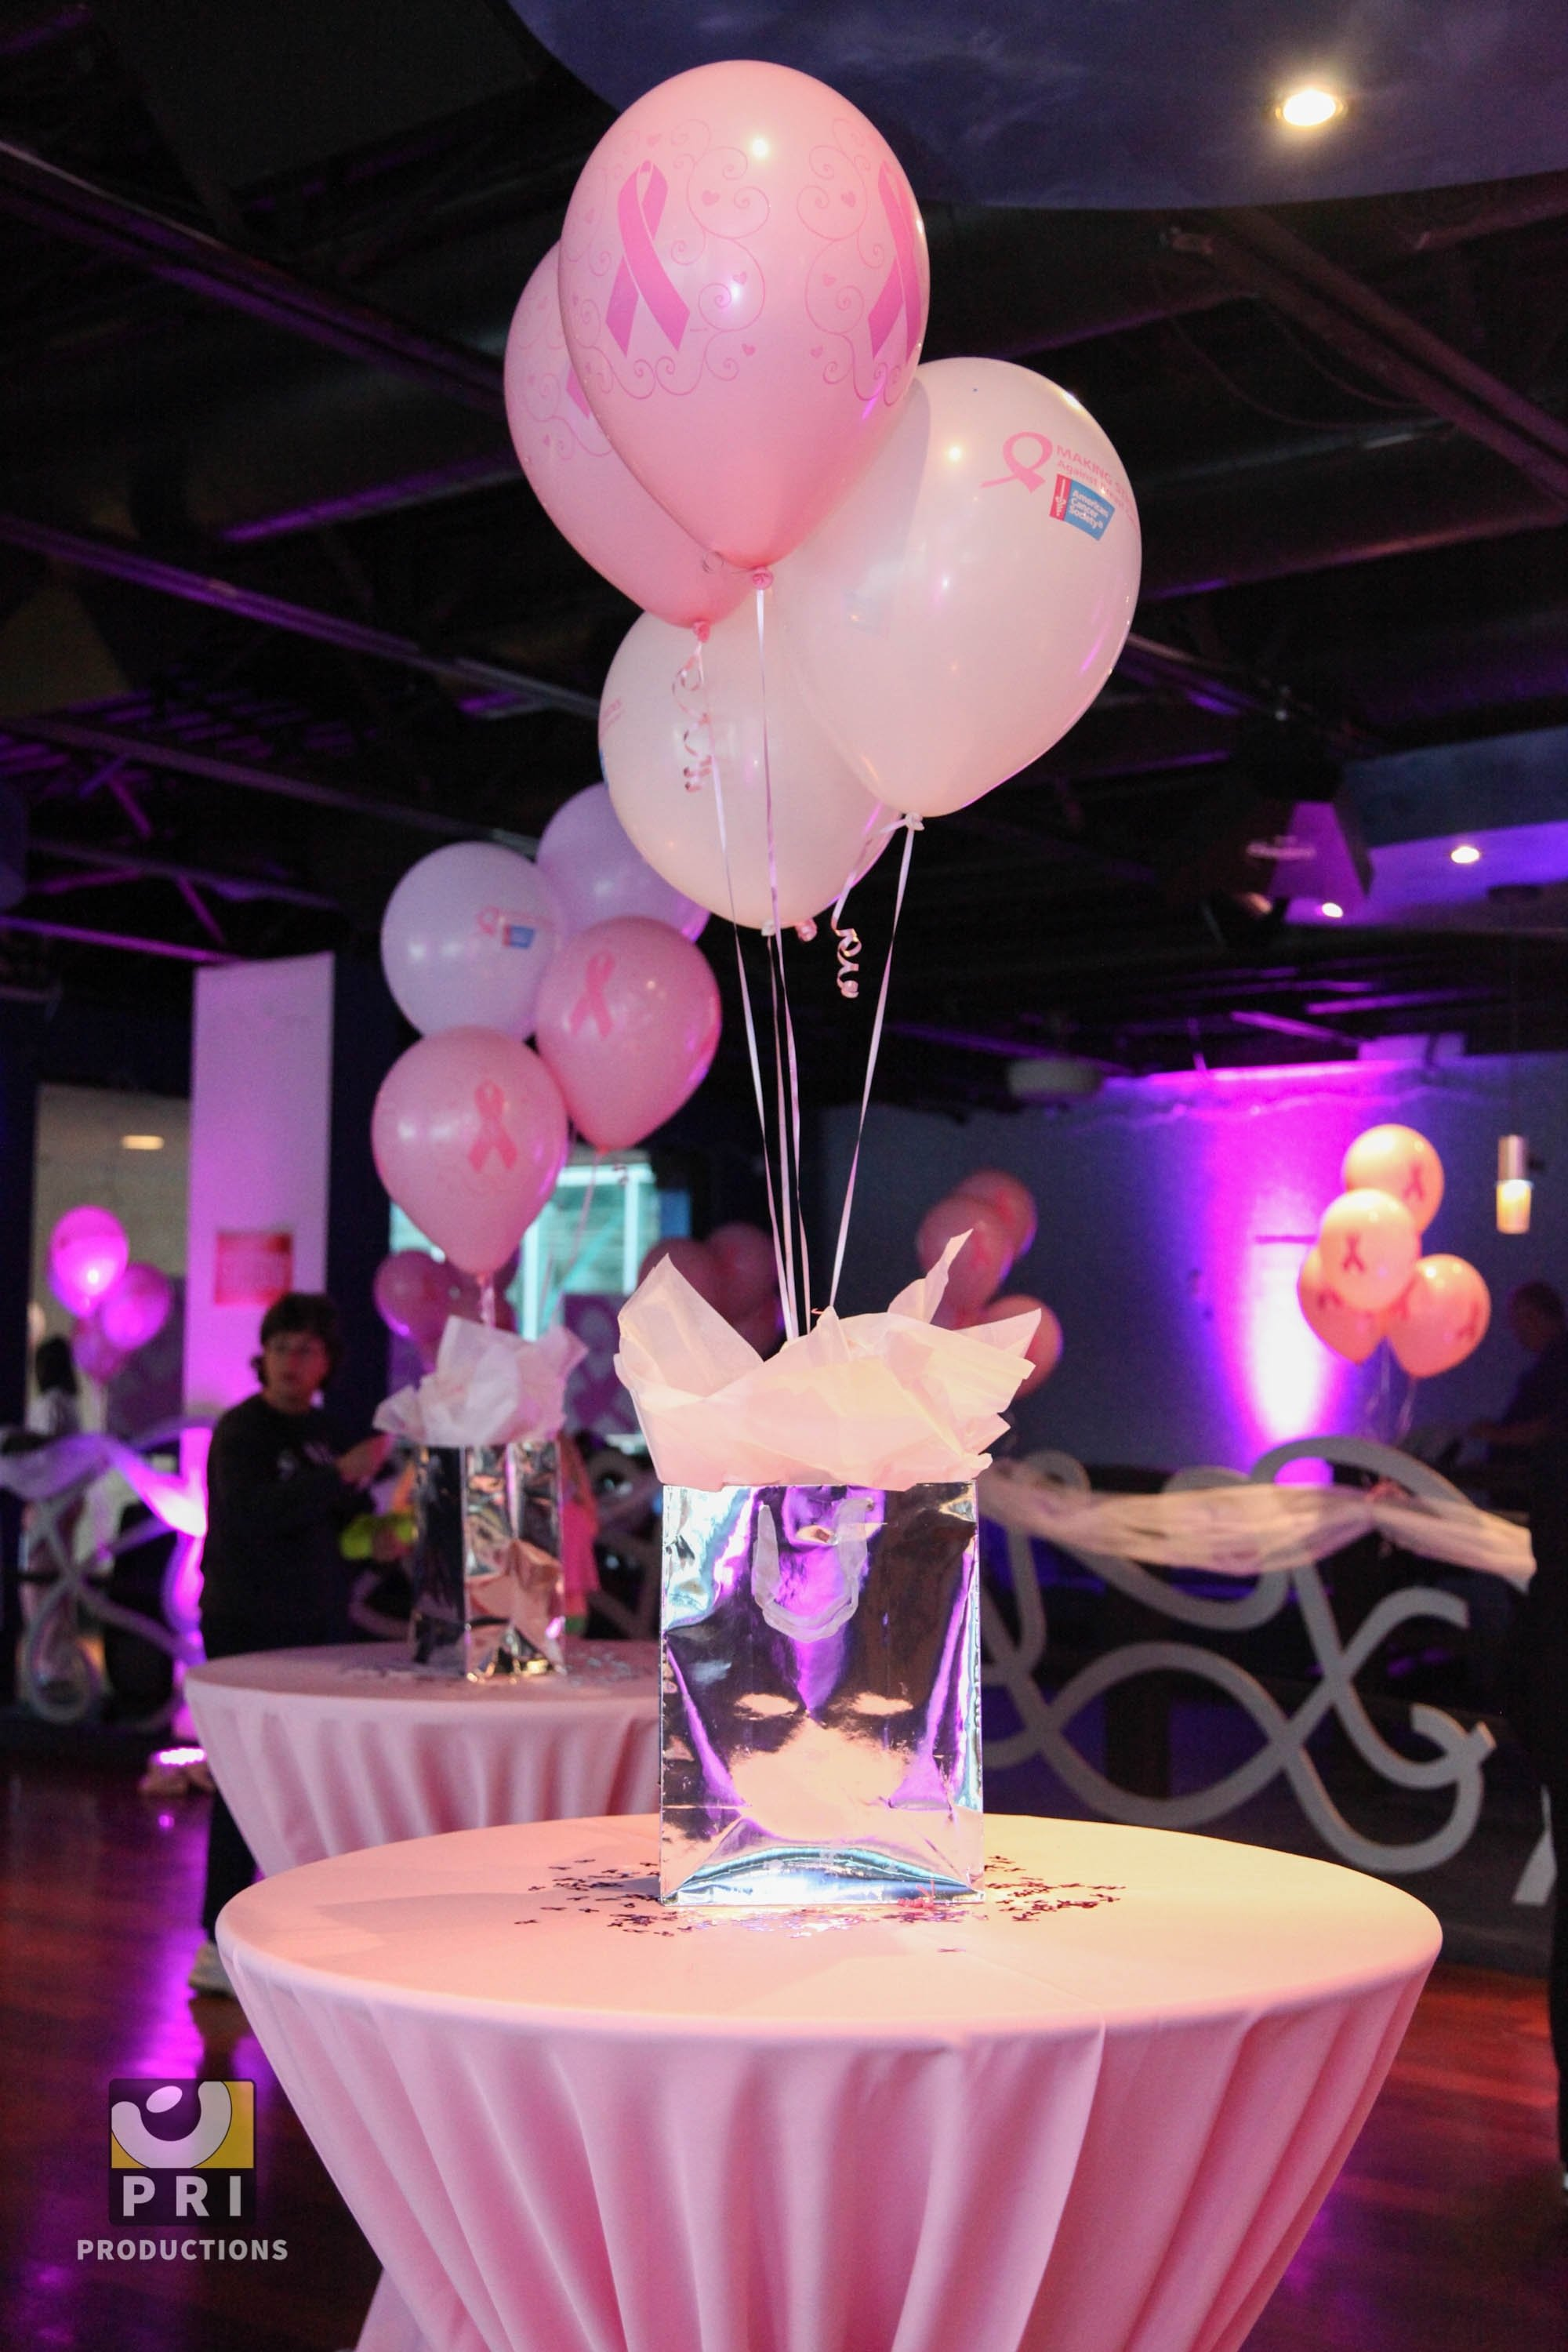 10 Fantastic Fundraising Ideas For Breast Cancer pink balloon and gift bag centerpiece with matching table linens for 2020